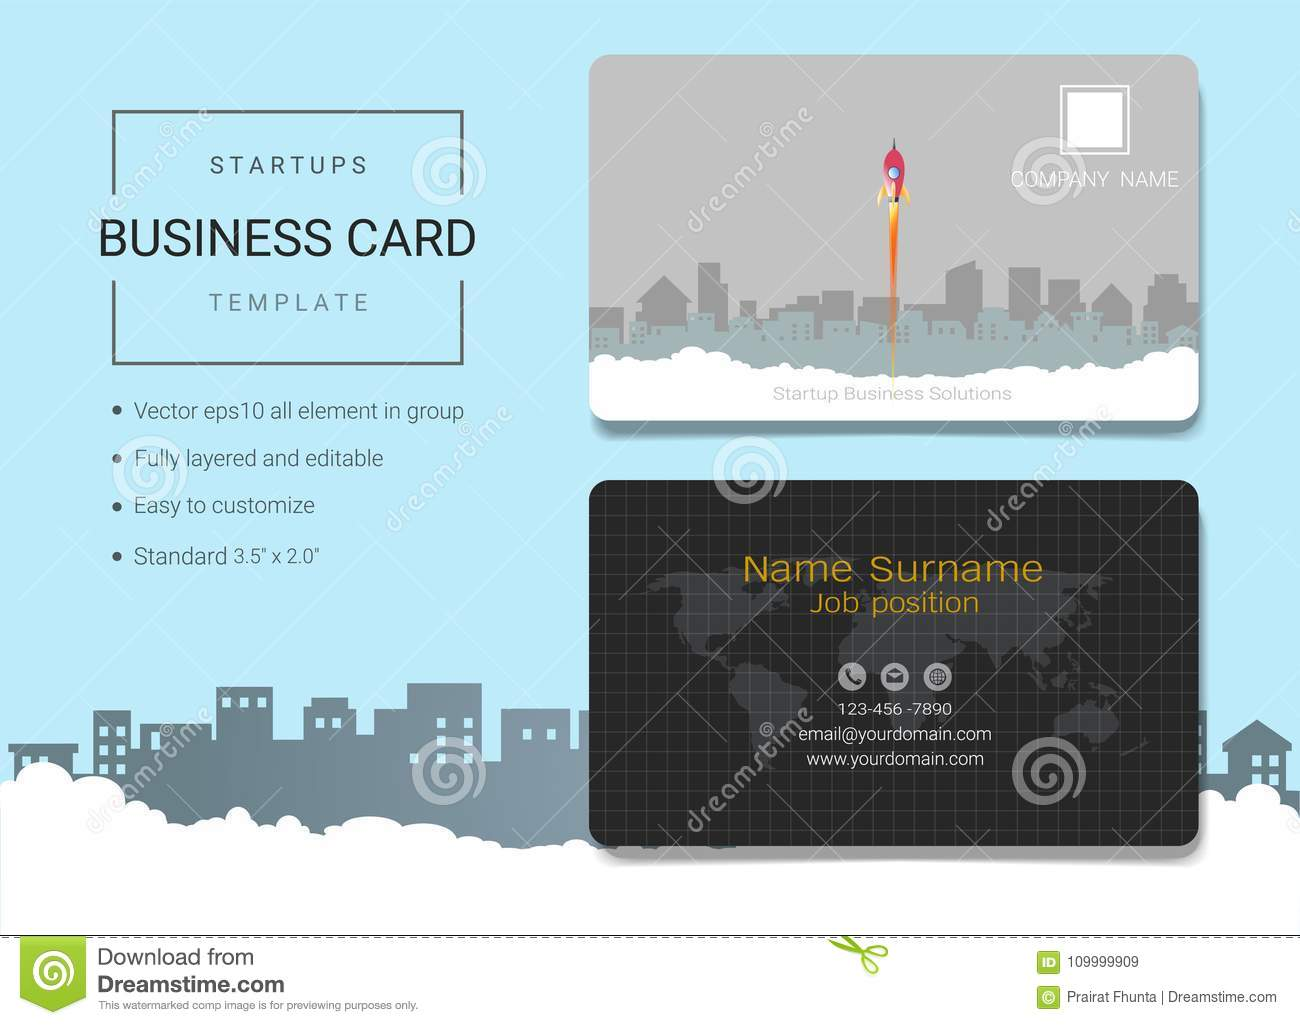 Startup business card or name card template stock vector download startup business card or name card template stock vector illustration of simple colourmoves